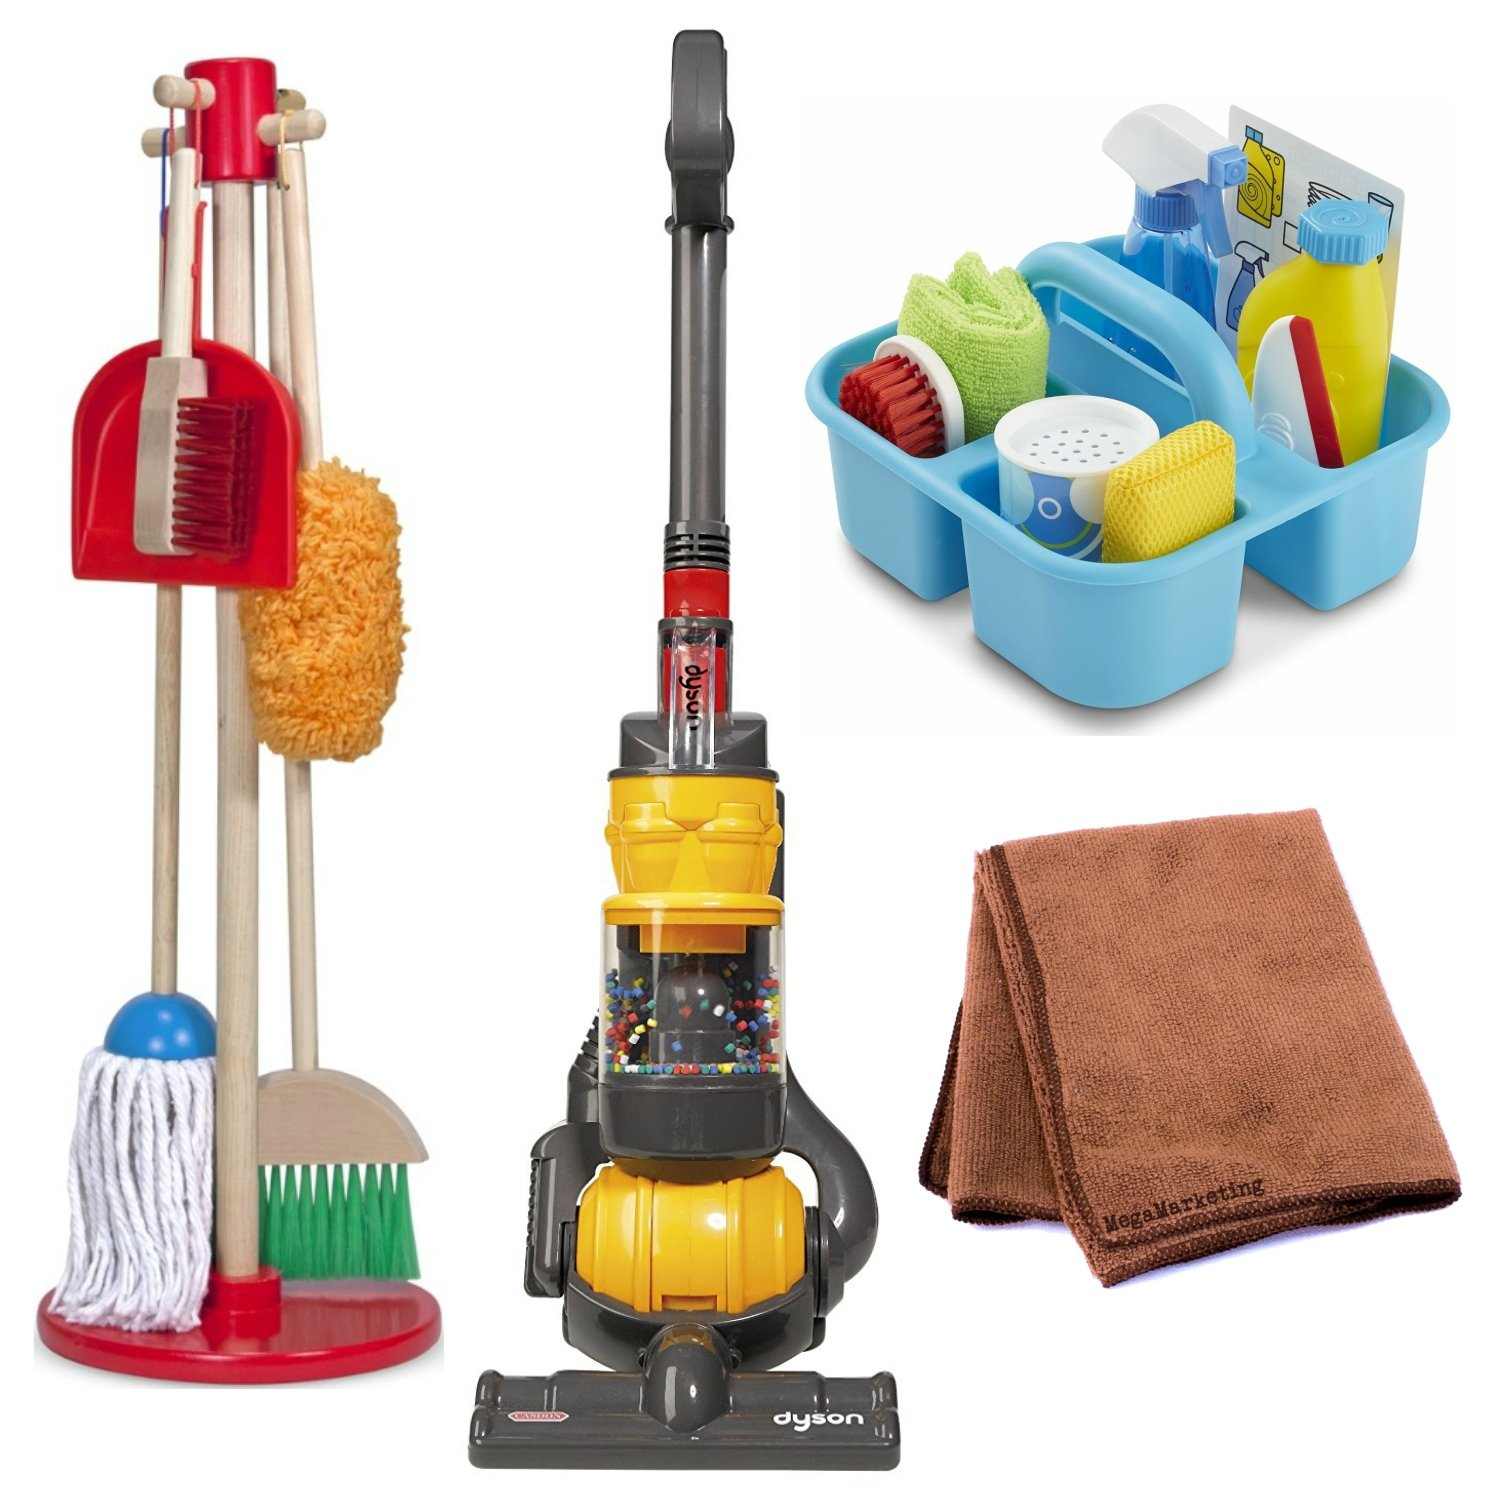 Melissa & Doug Pretend Play Cleaning Play Set and Casdon Dyson Ball Toy Vacuum with Cleaning Cloth by Mélissa & Doug